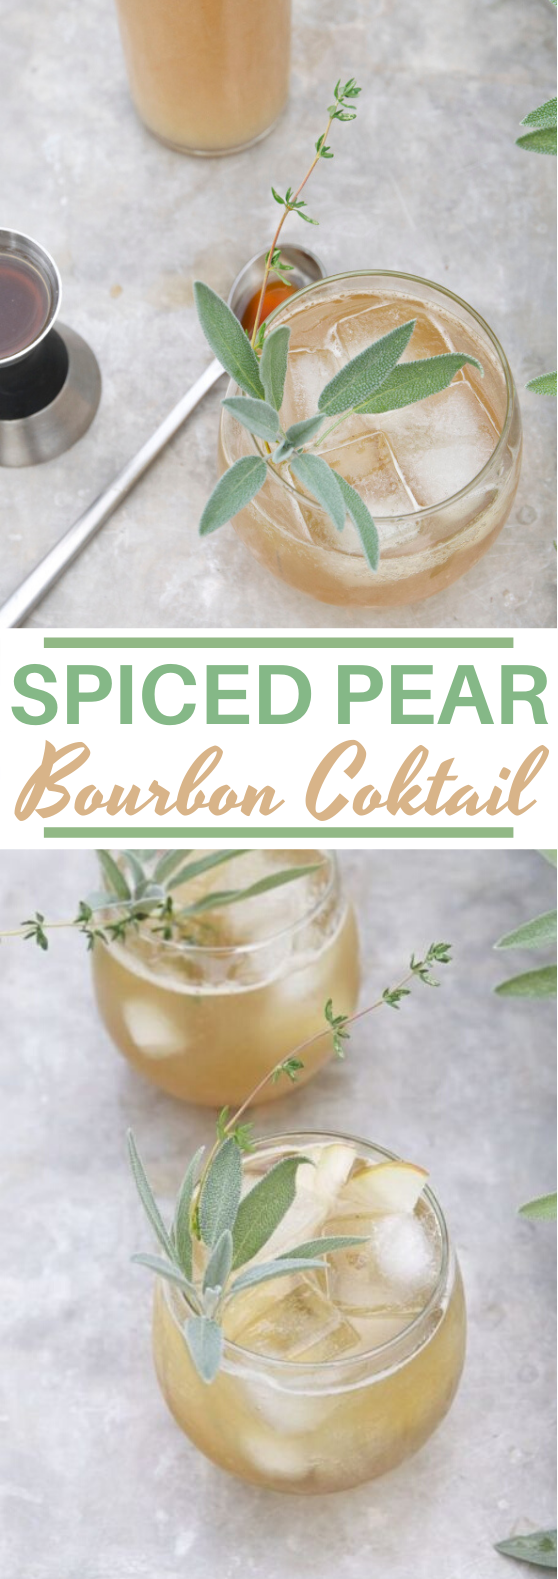 Spiced Pear Bourbon Cocktail #drinks #cocktails #alcohol #fall #beverages